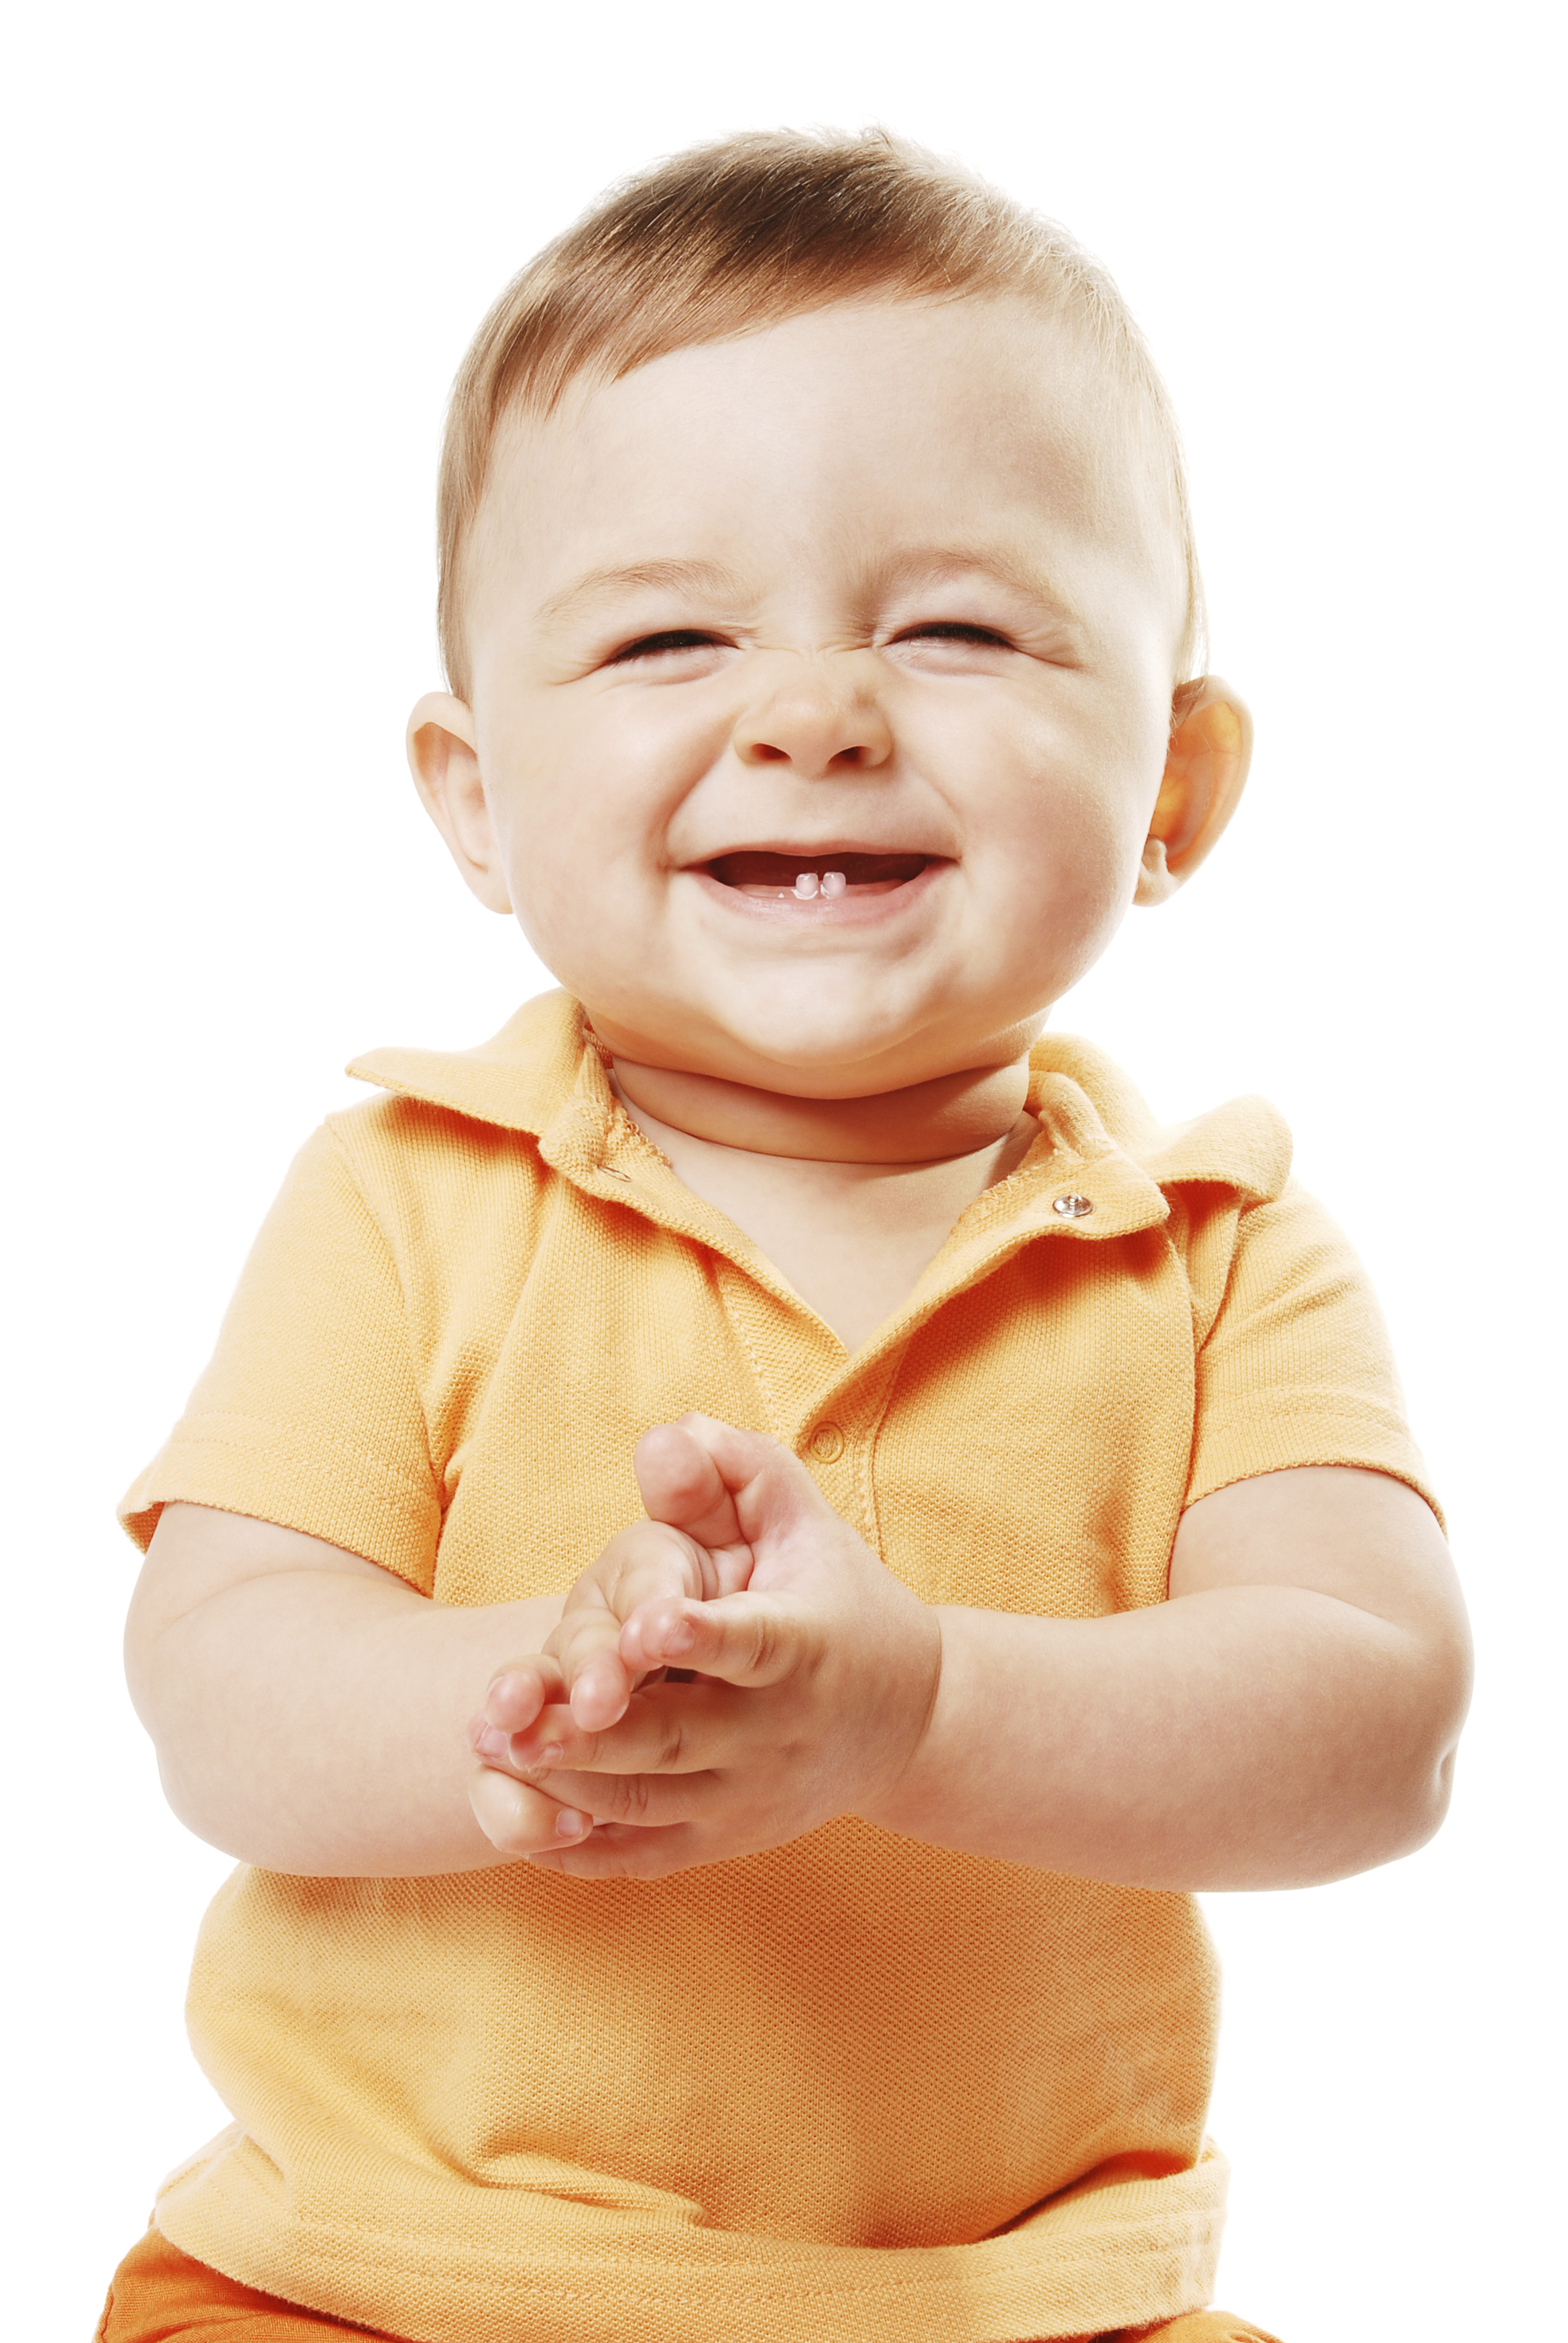 Baby clapping